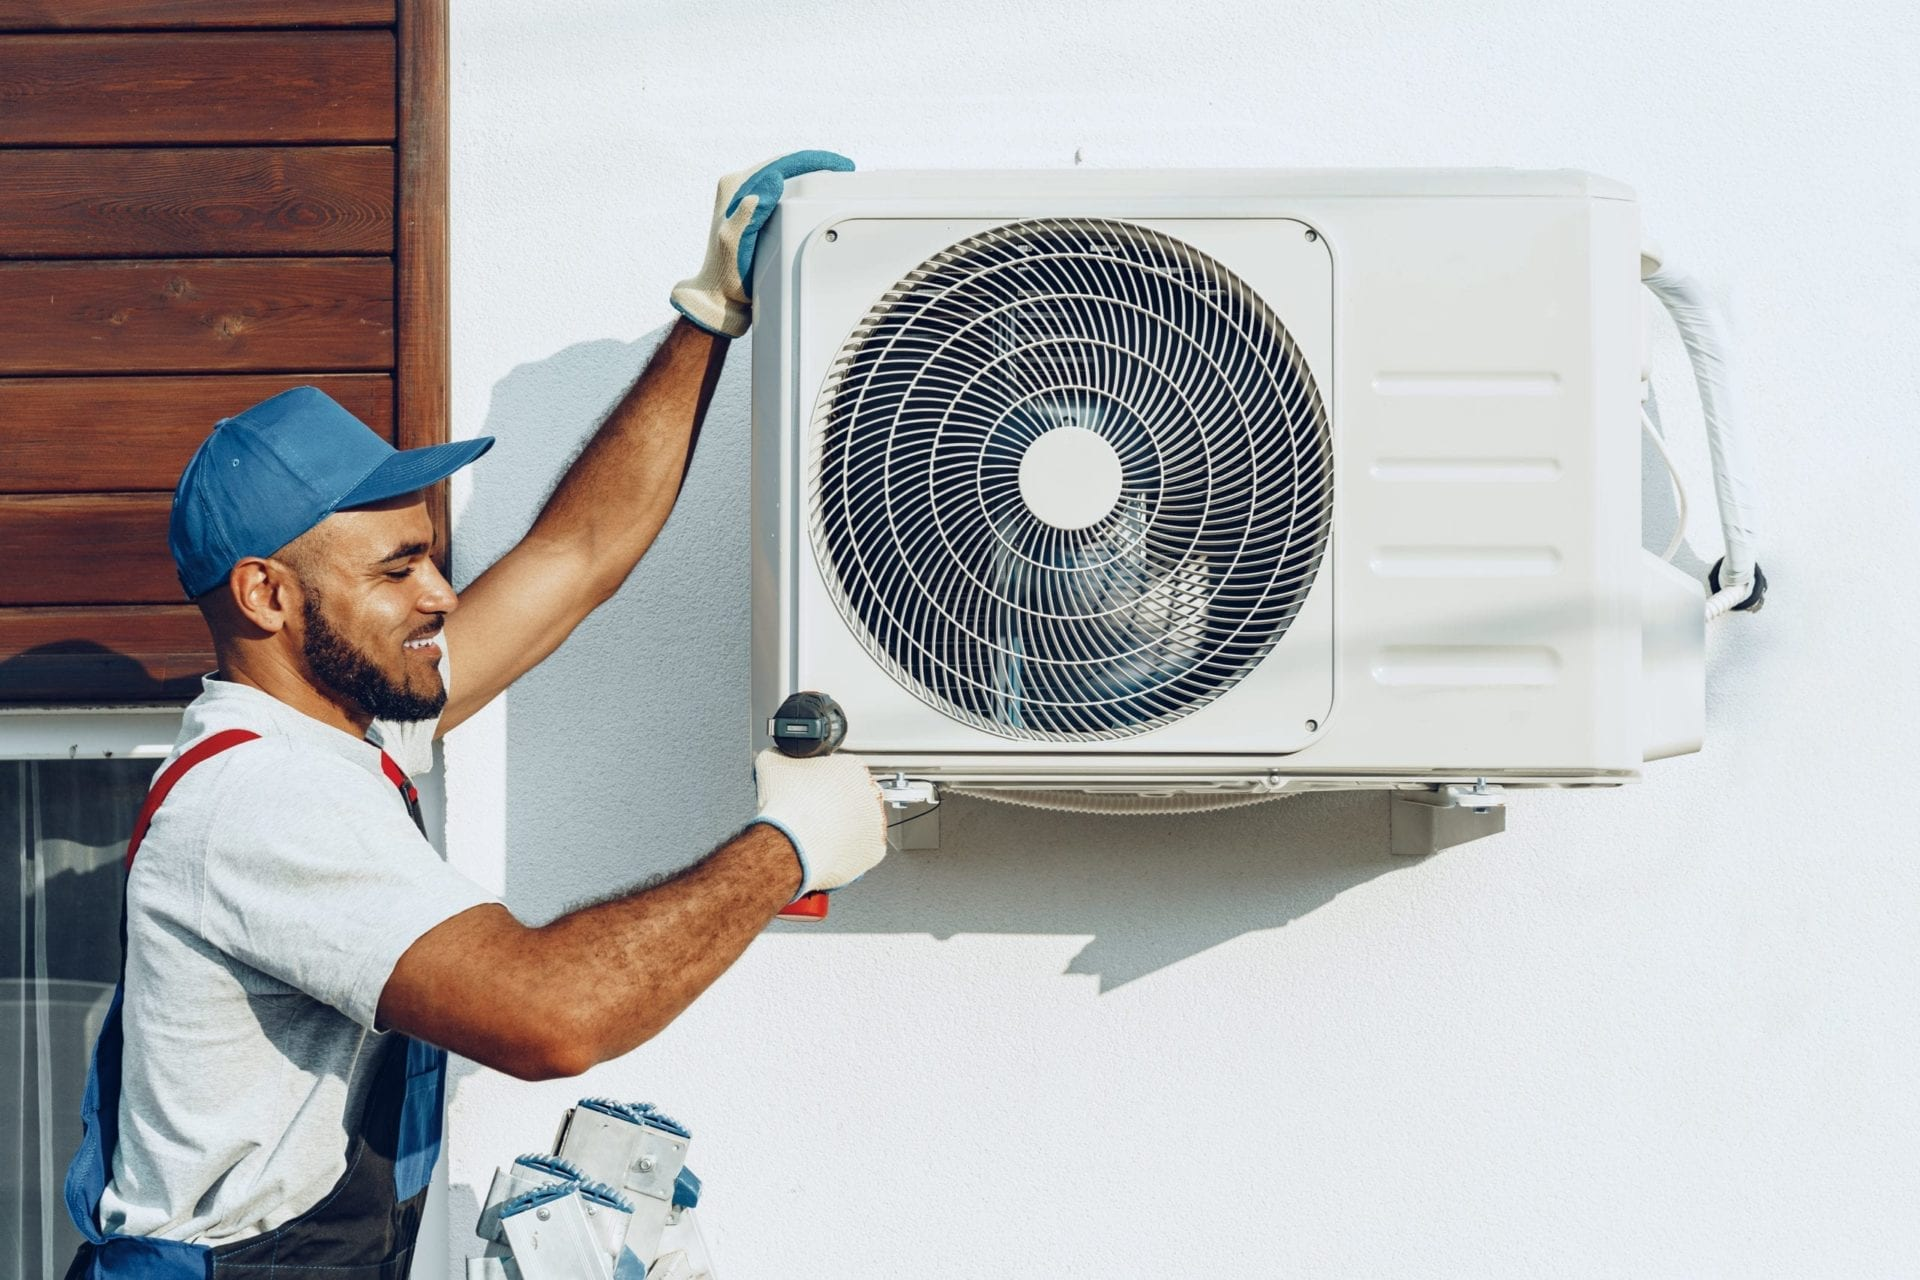 Hand press on remote control of Air Conditioning.